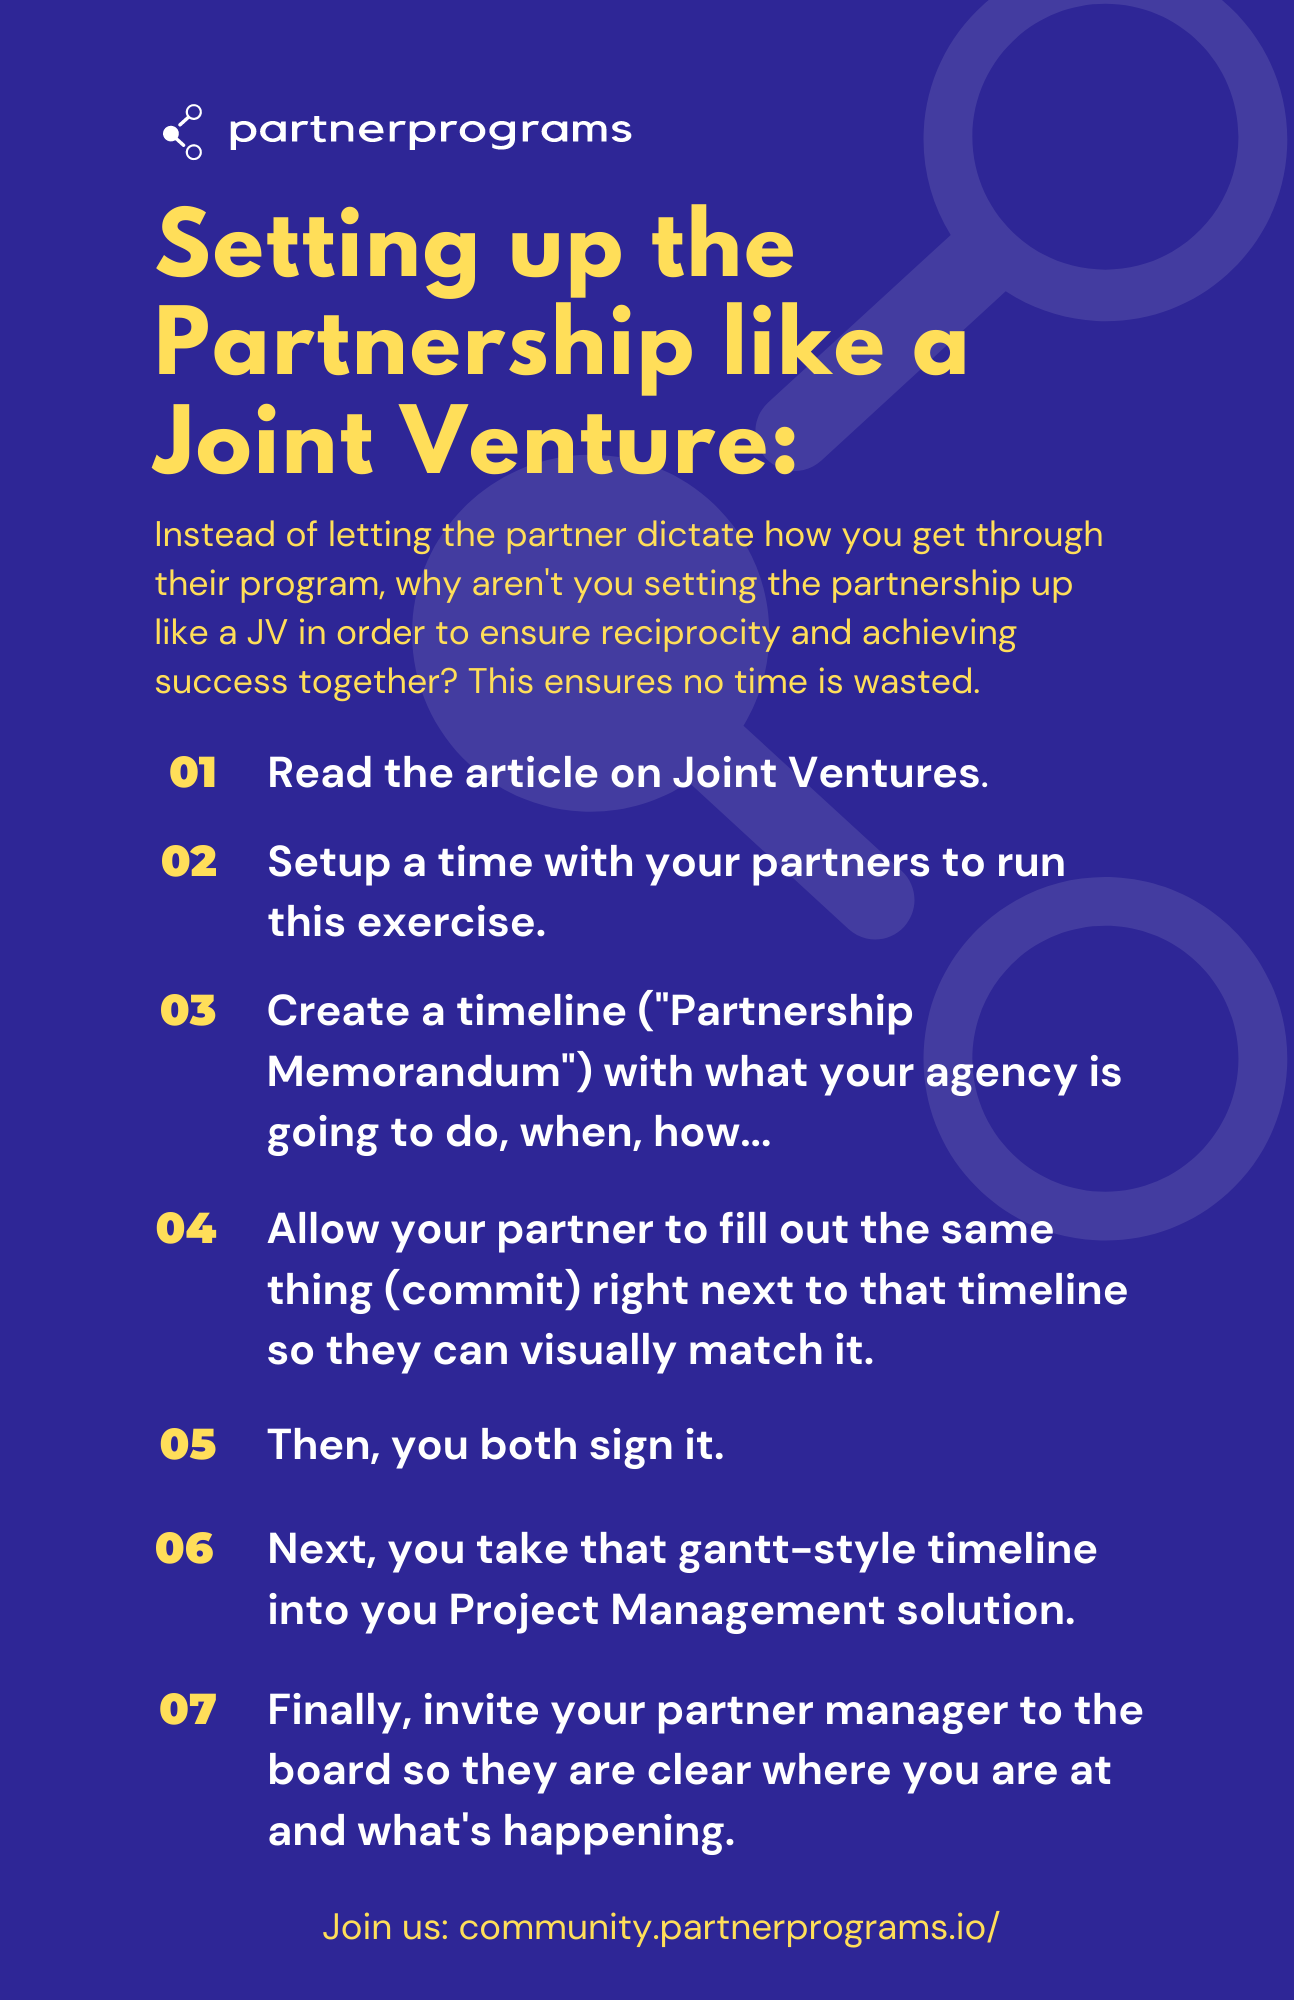 Setting up the Partnership like a Joint Venture (in 7 steps)